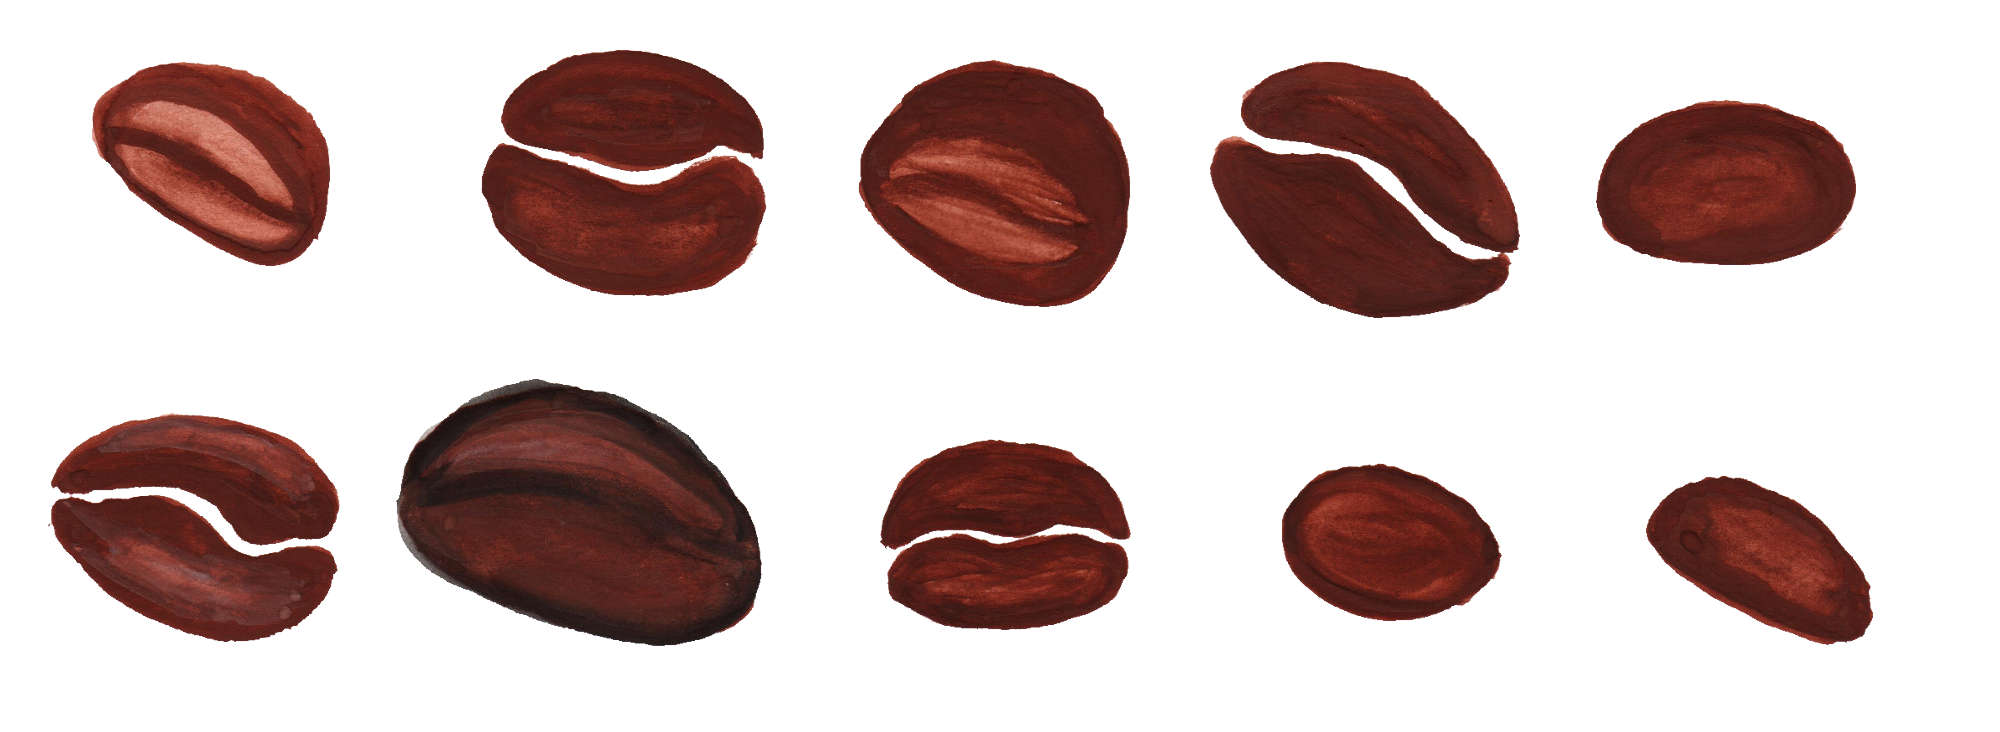 10 watercolor coffee bean png transparent for Coffee watercolor